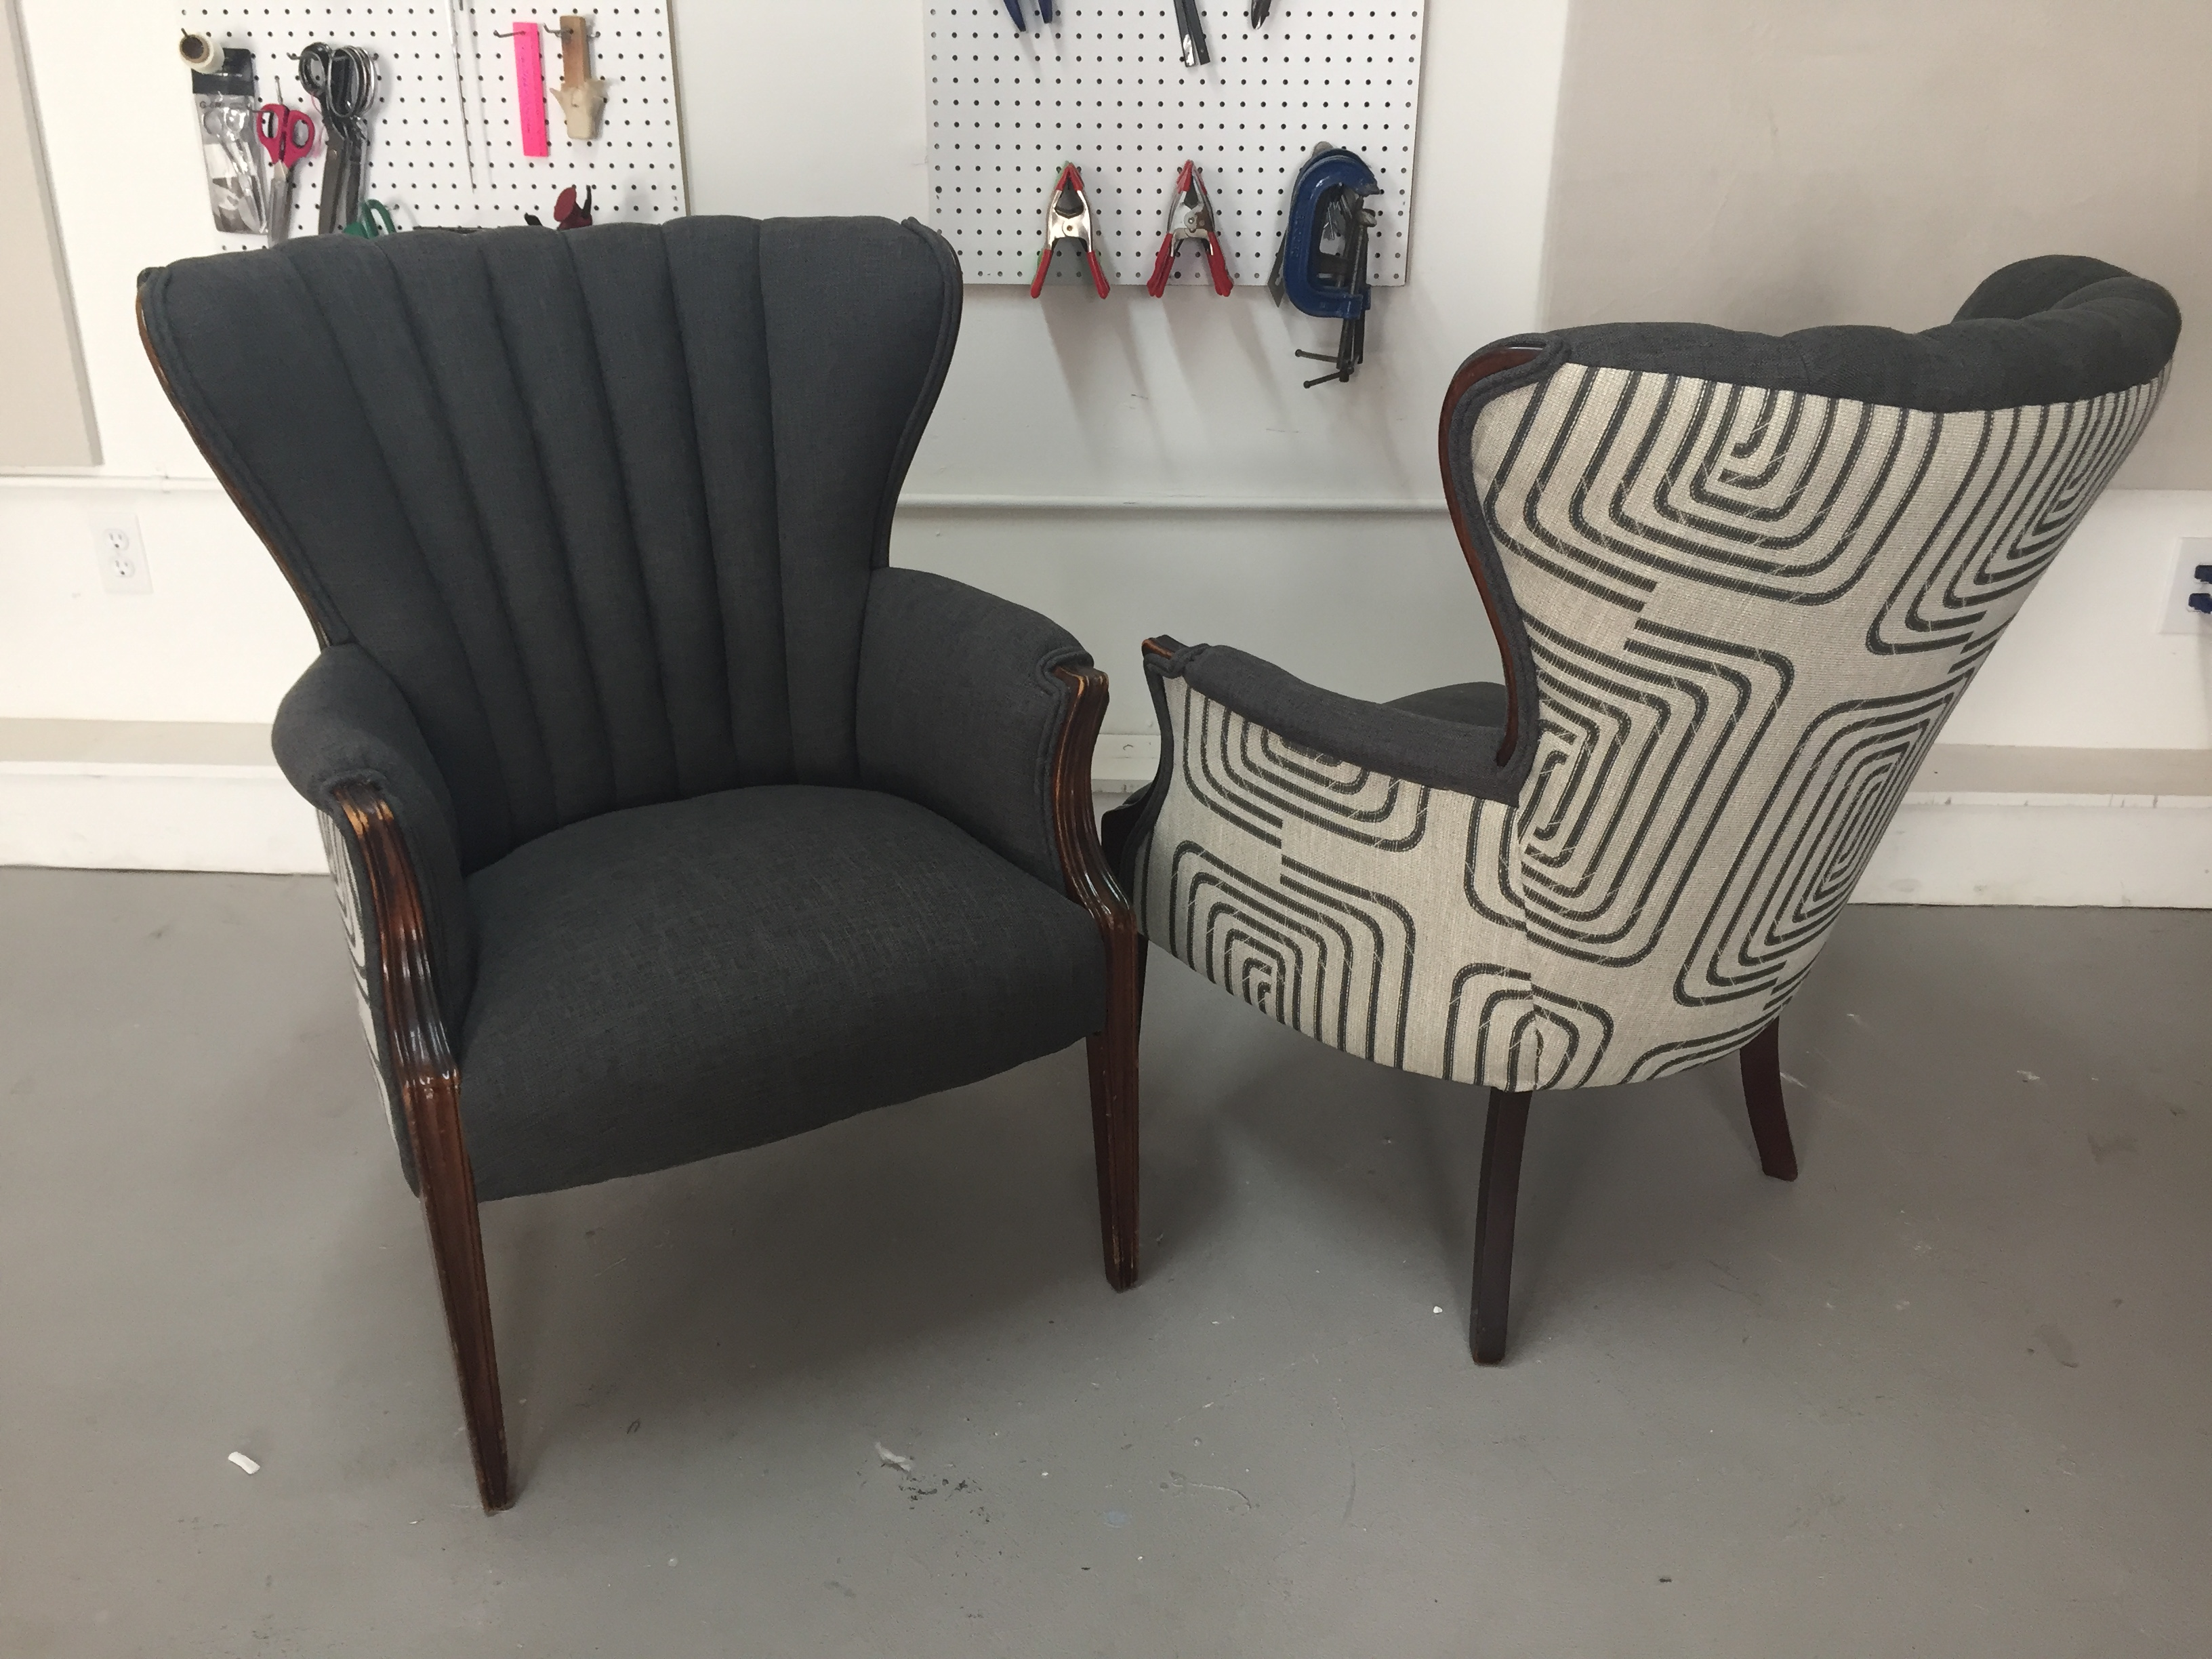 upholstering a chair wicker outdoor cushions pair of vintage chairs kim 39s upholstery